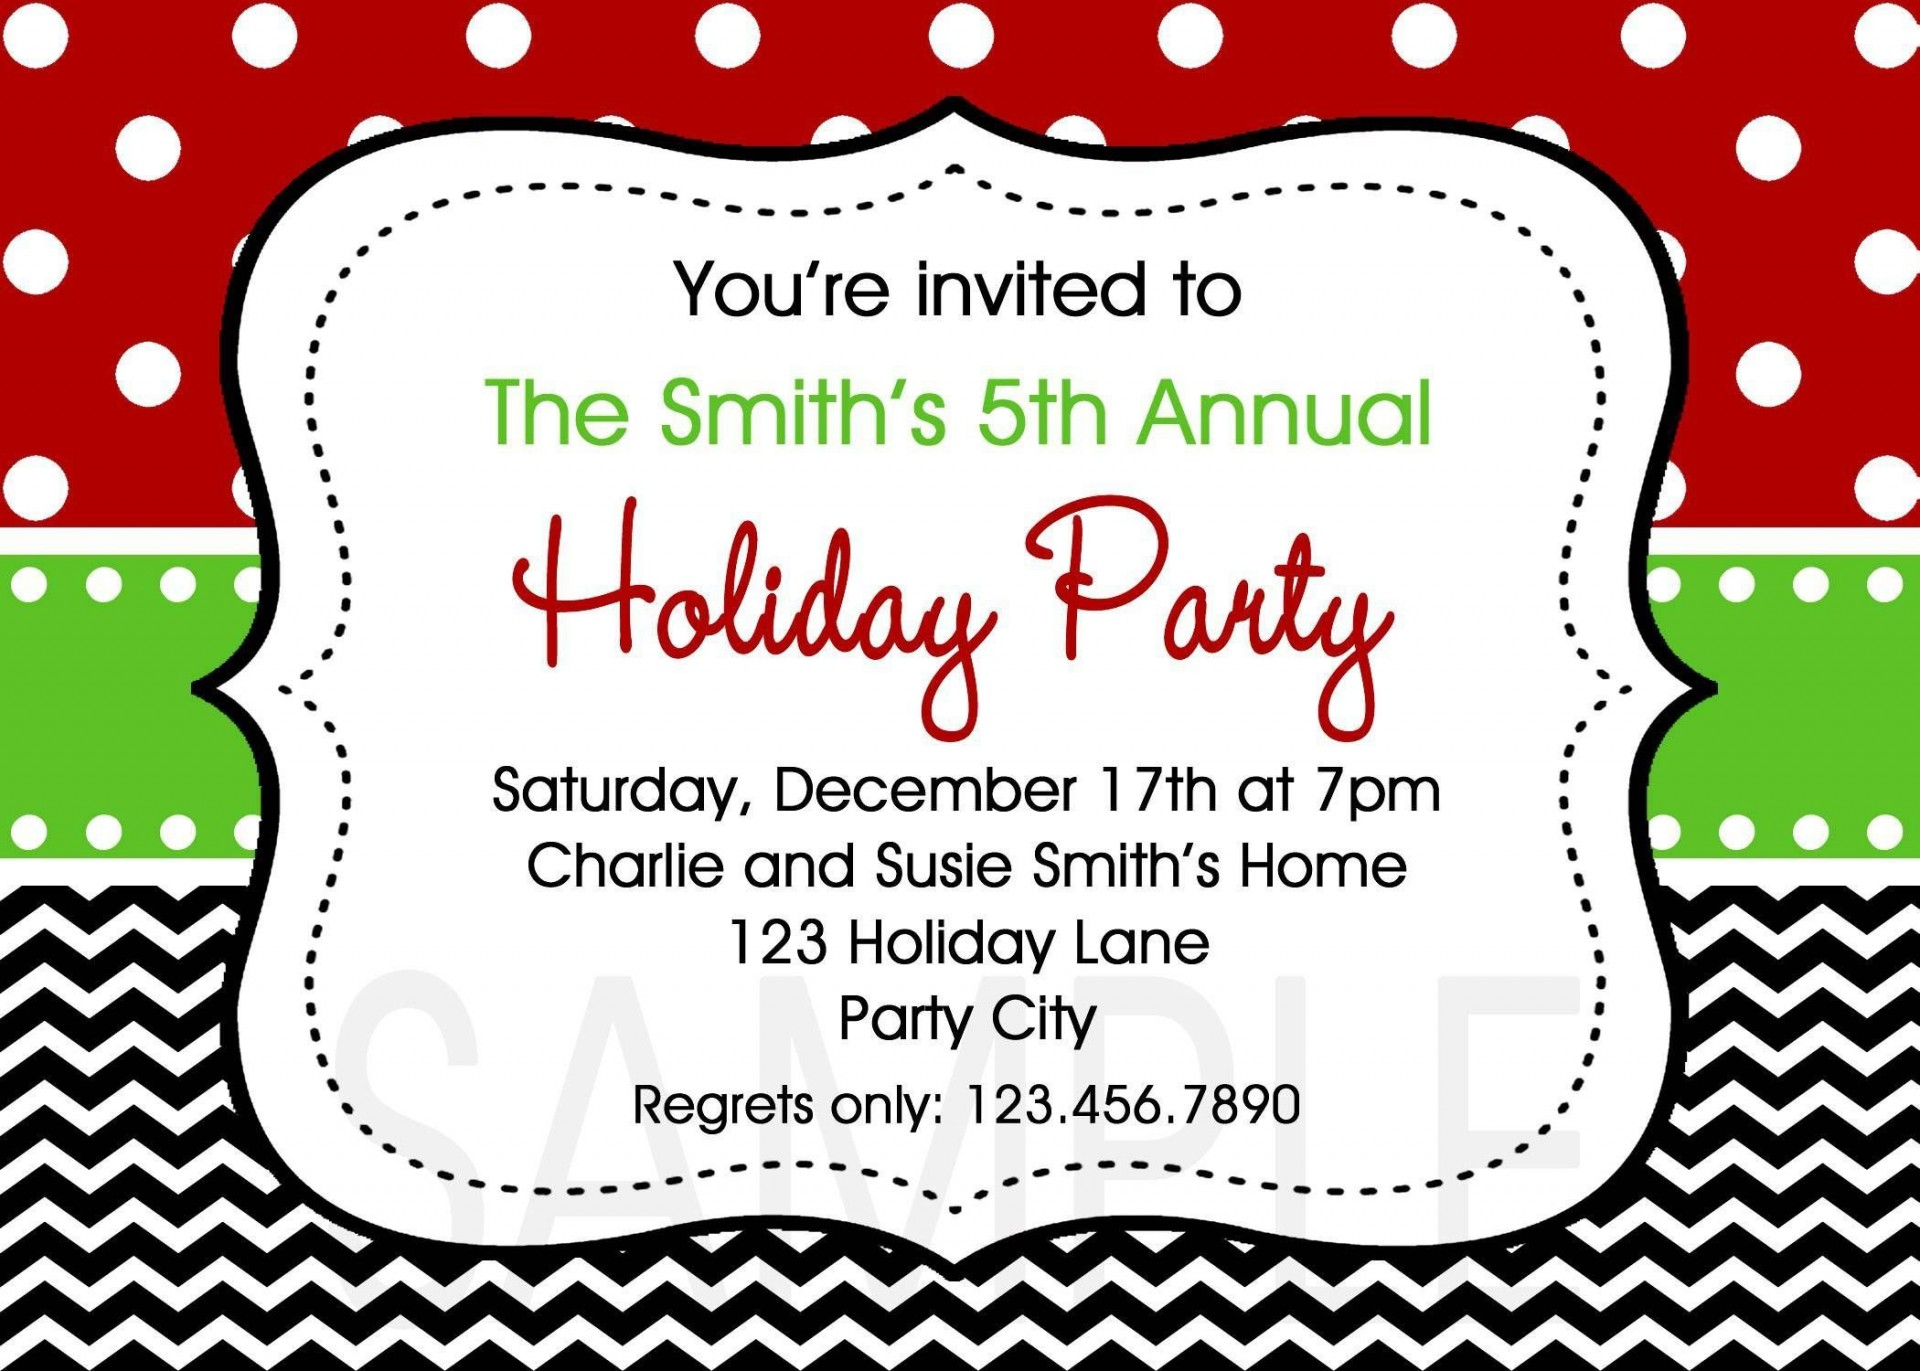 003 Formidable Christma Party Invite Template Word Photo  Holiday Free Invitation Wording Example1920